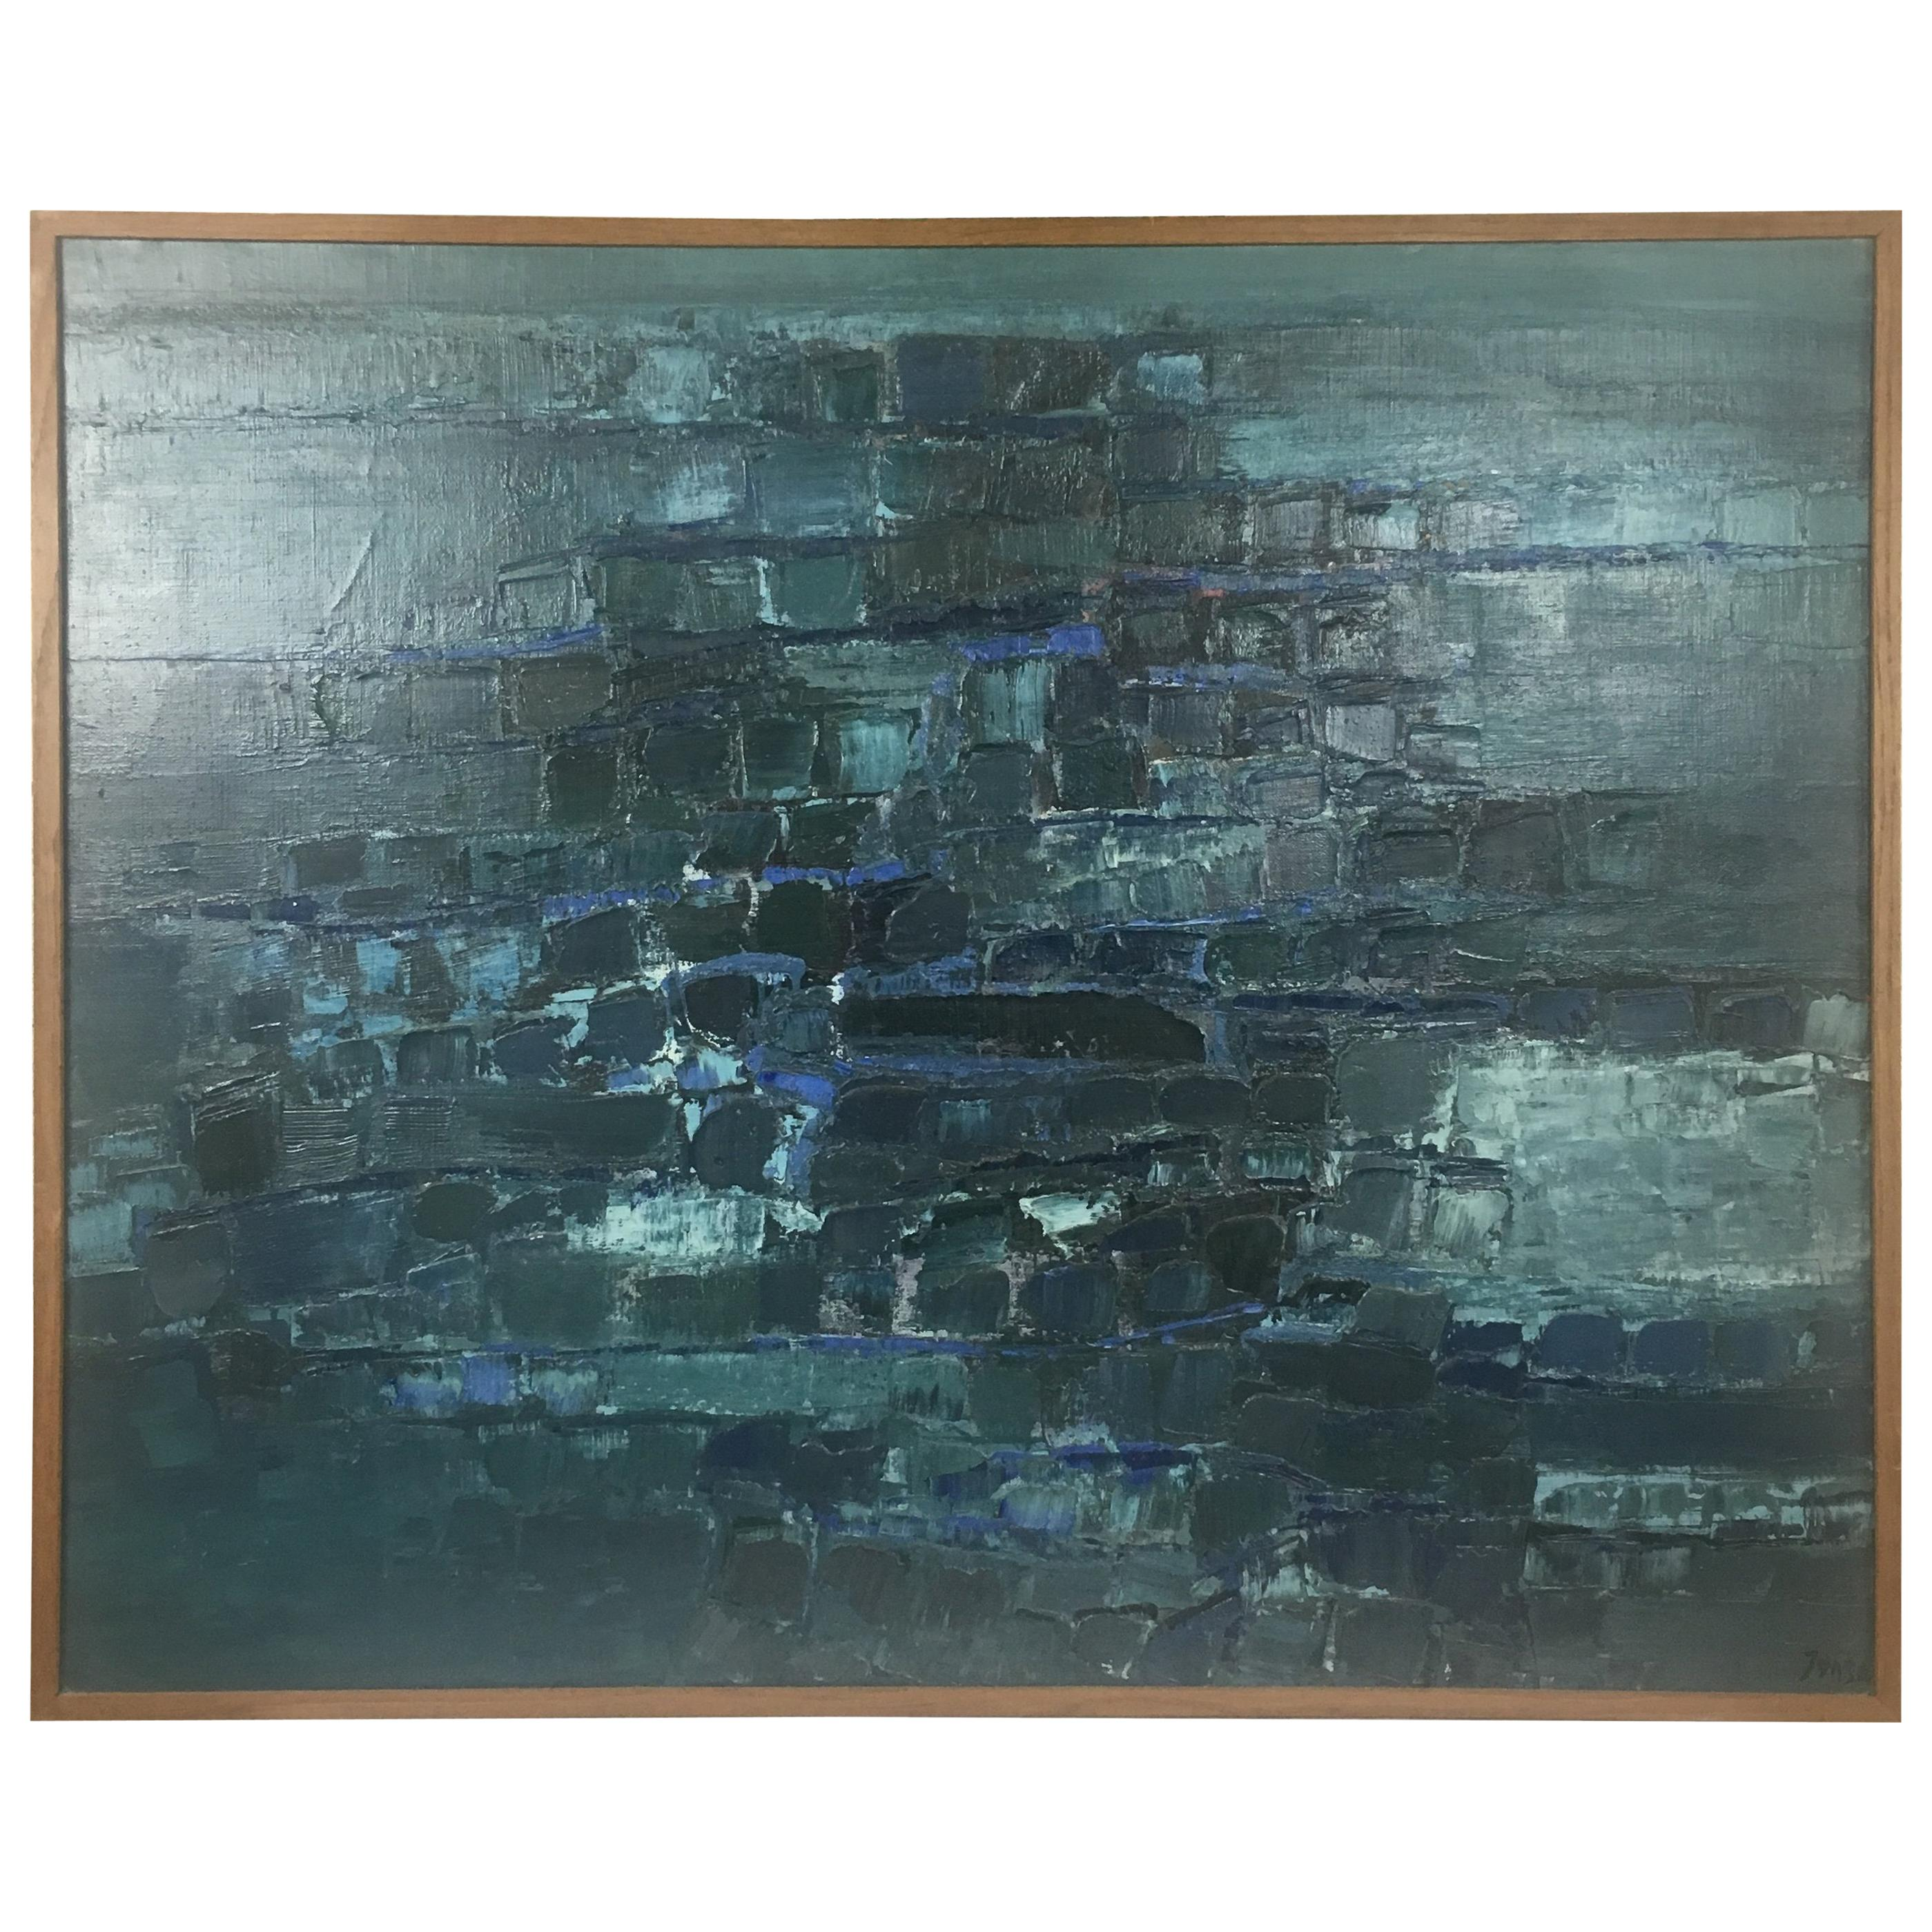 Midcentury Abstract Art Composition by Mark Janson, circa 1958